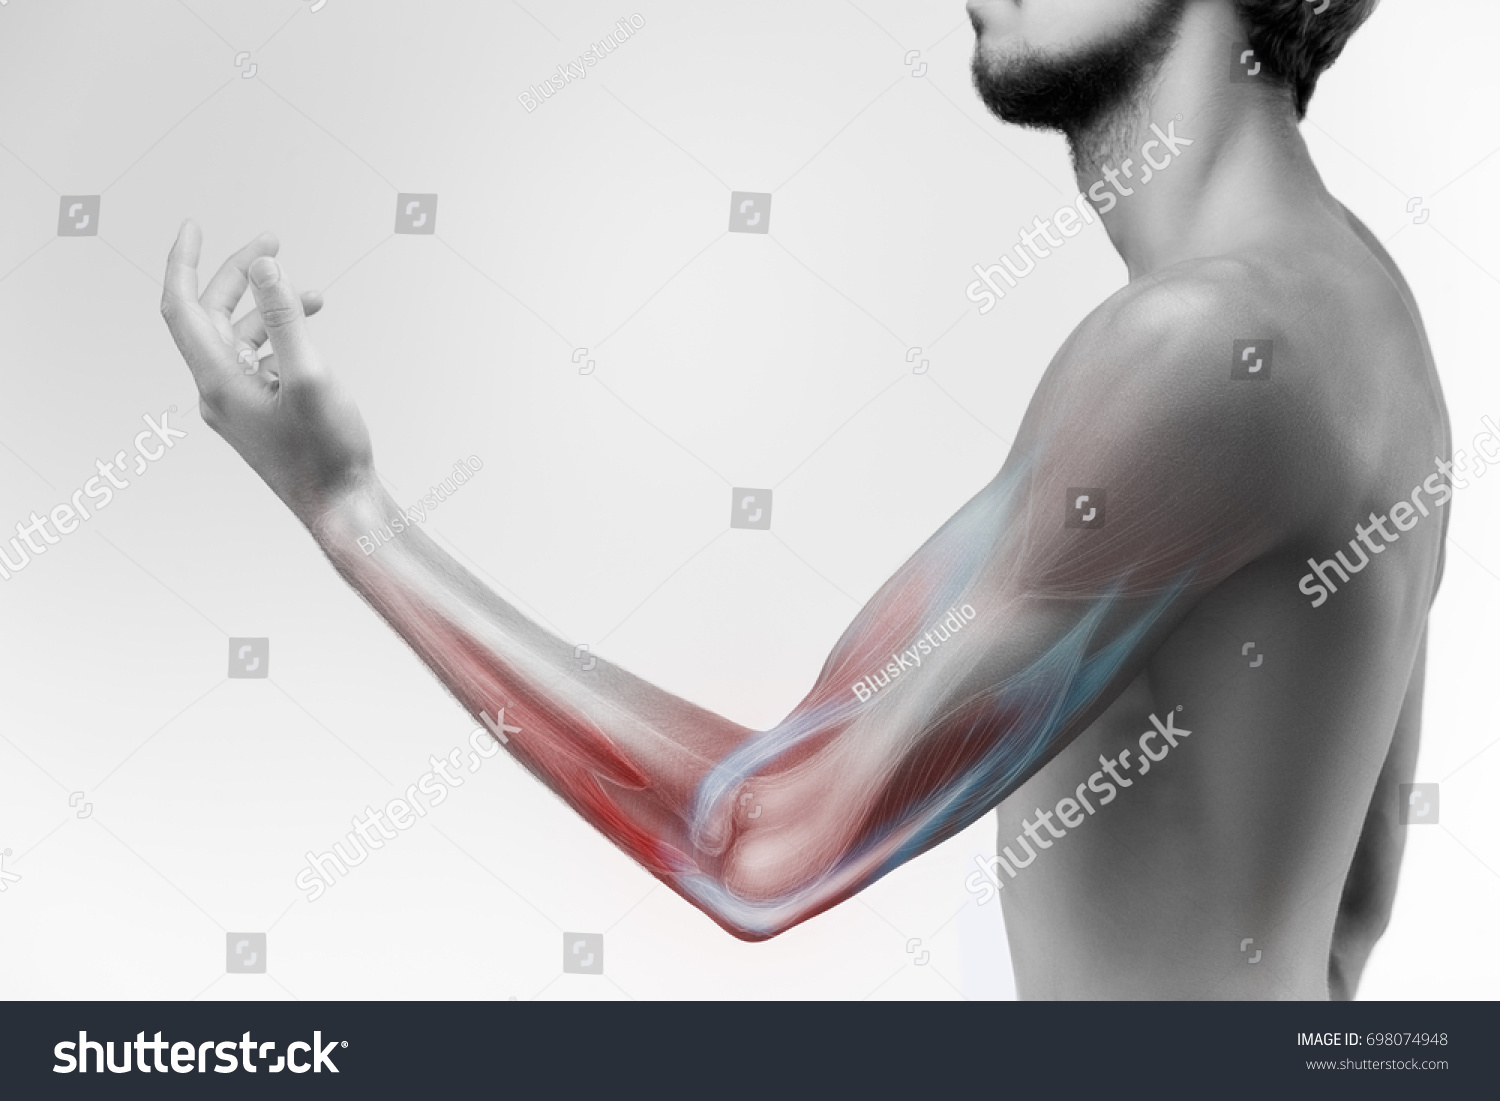 Human Arm Musculature Anatomy Human Arm Stock Photo Edit Now